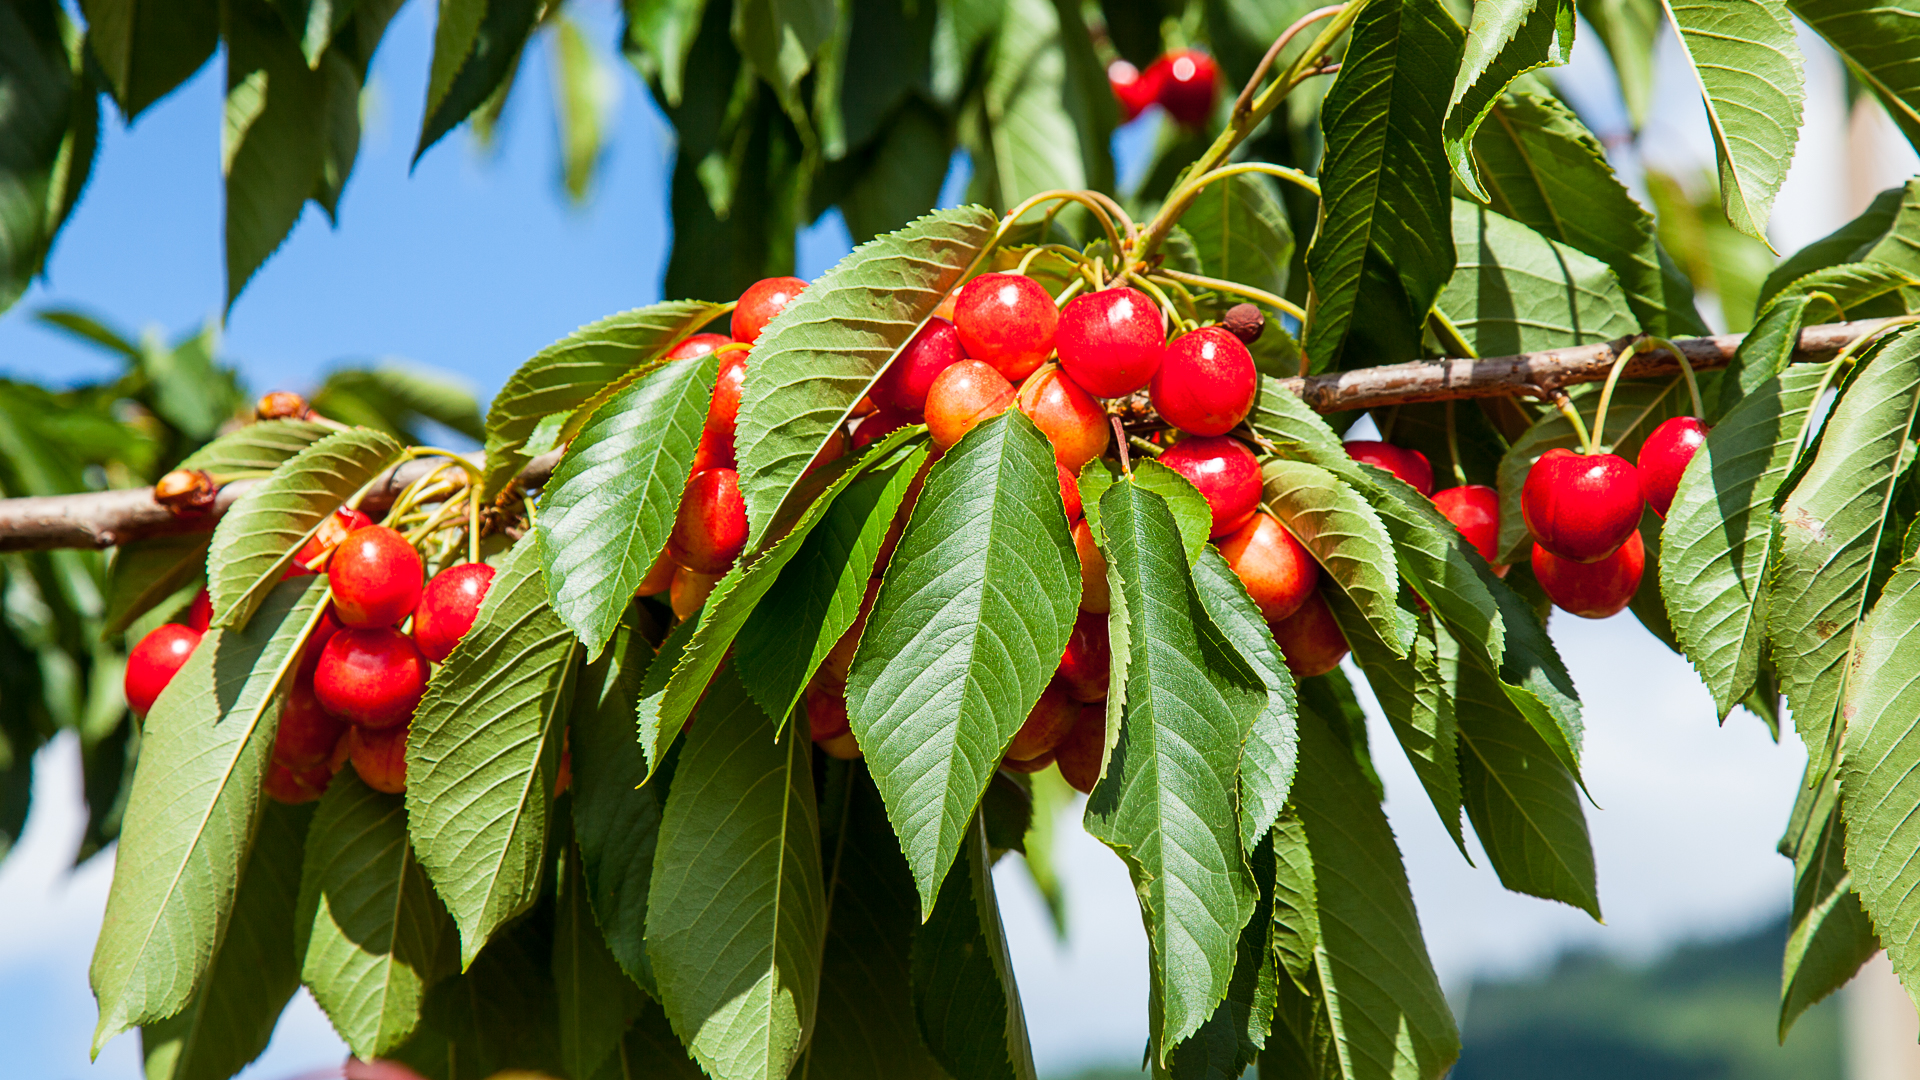 The farm had lots of cherry trees, including these Rainier cherries.